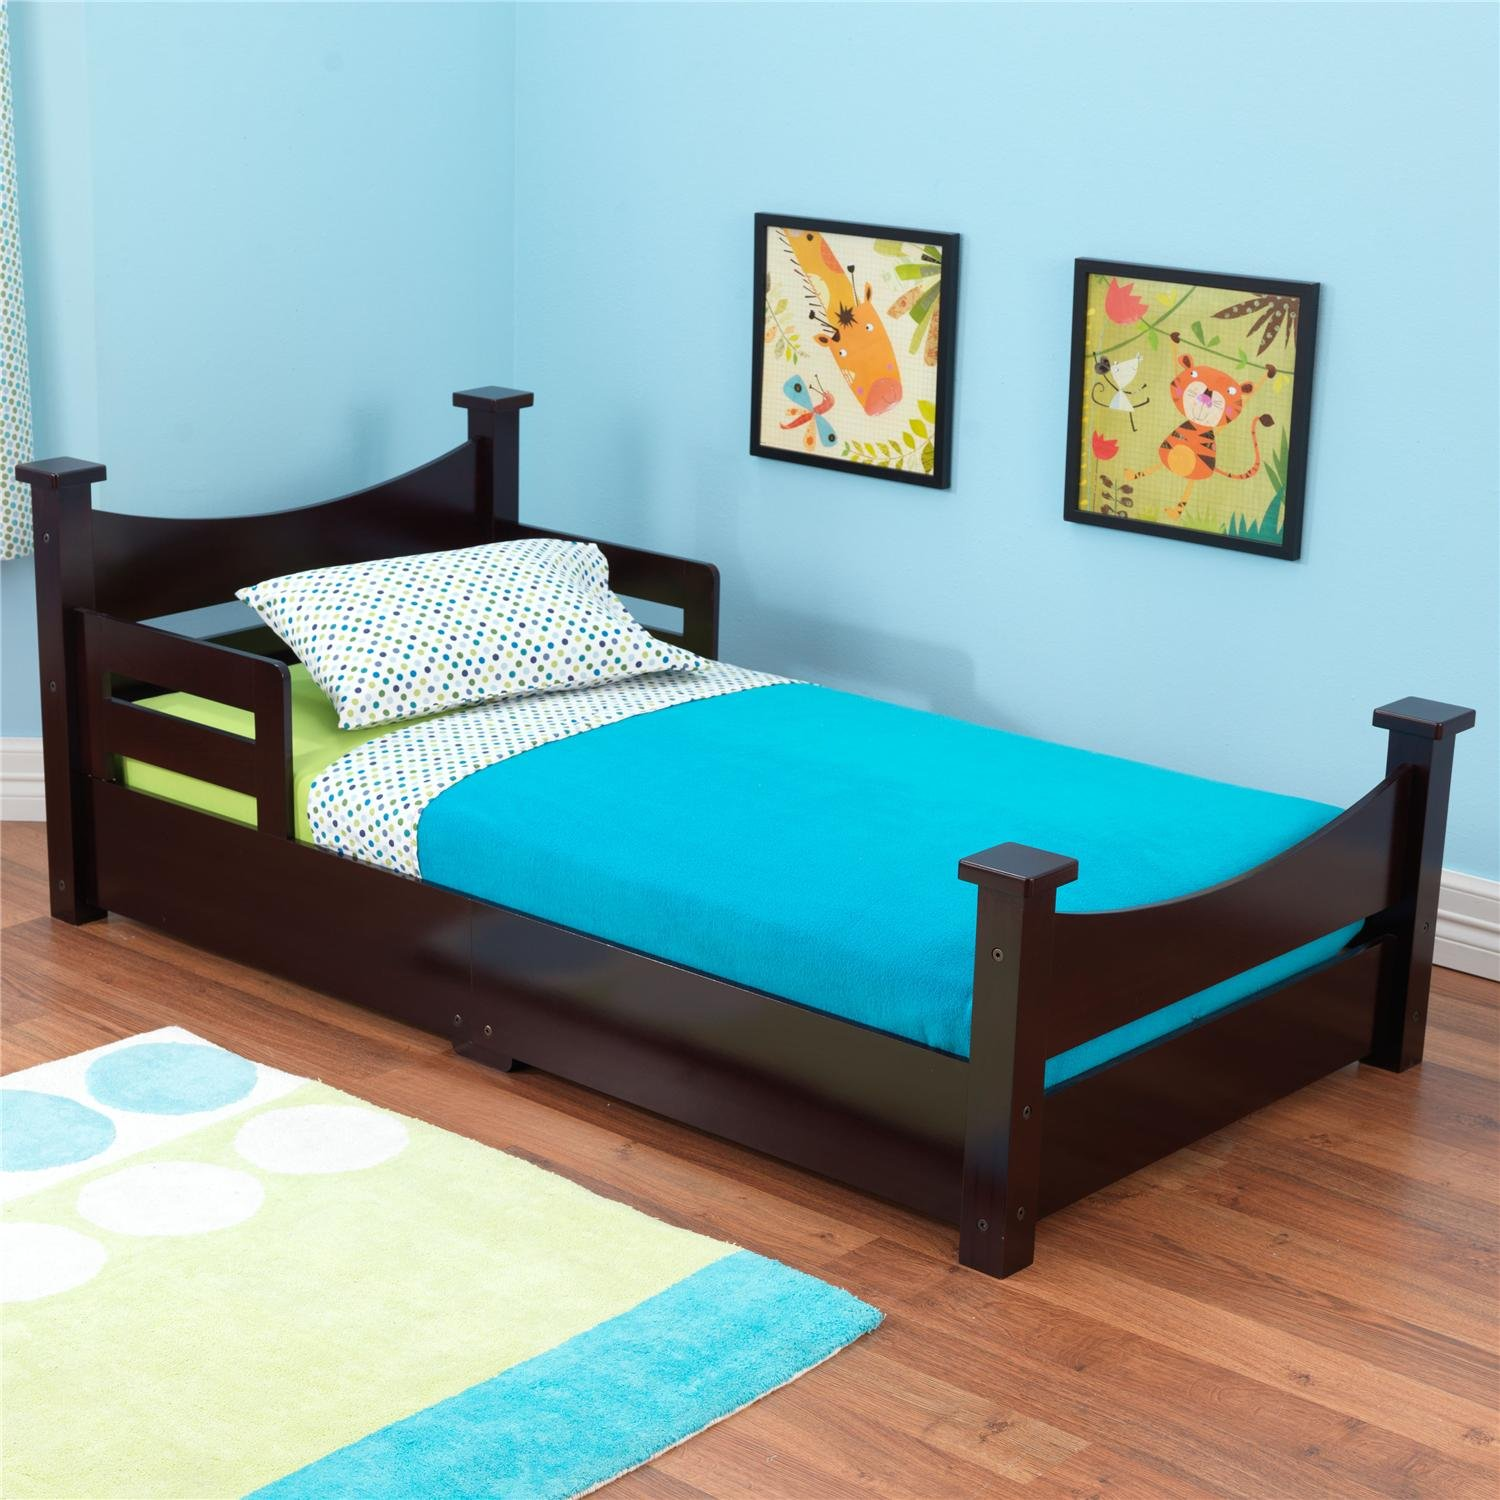 KidKraft Toddler Addison Bed, Espresso 76275